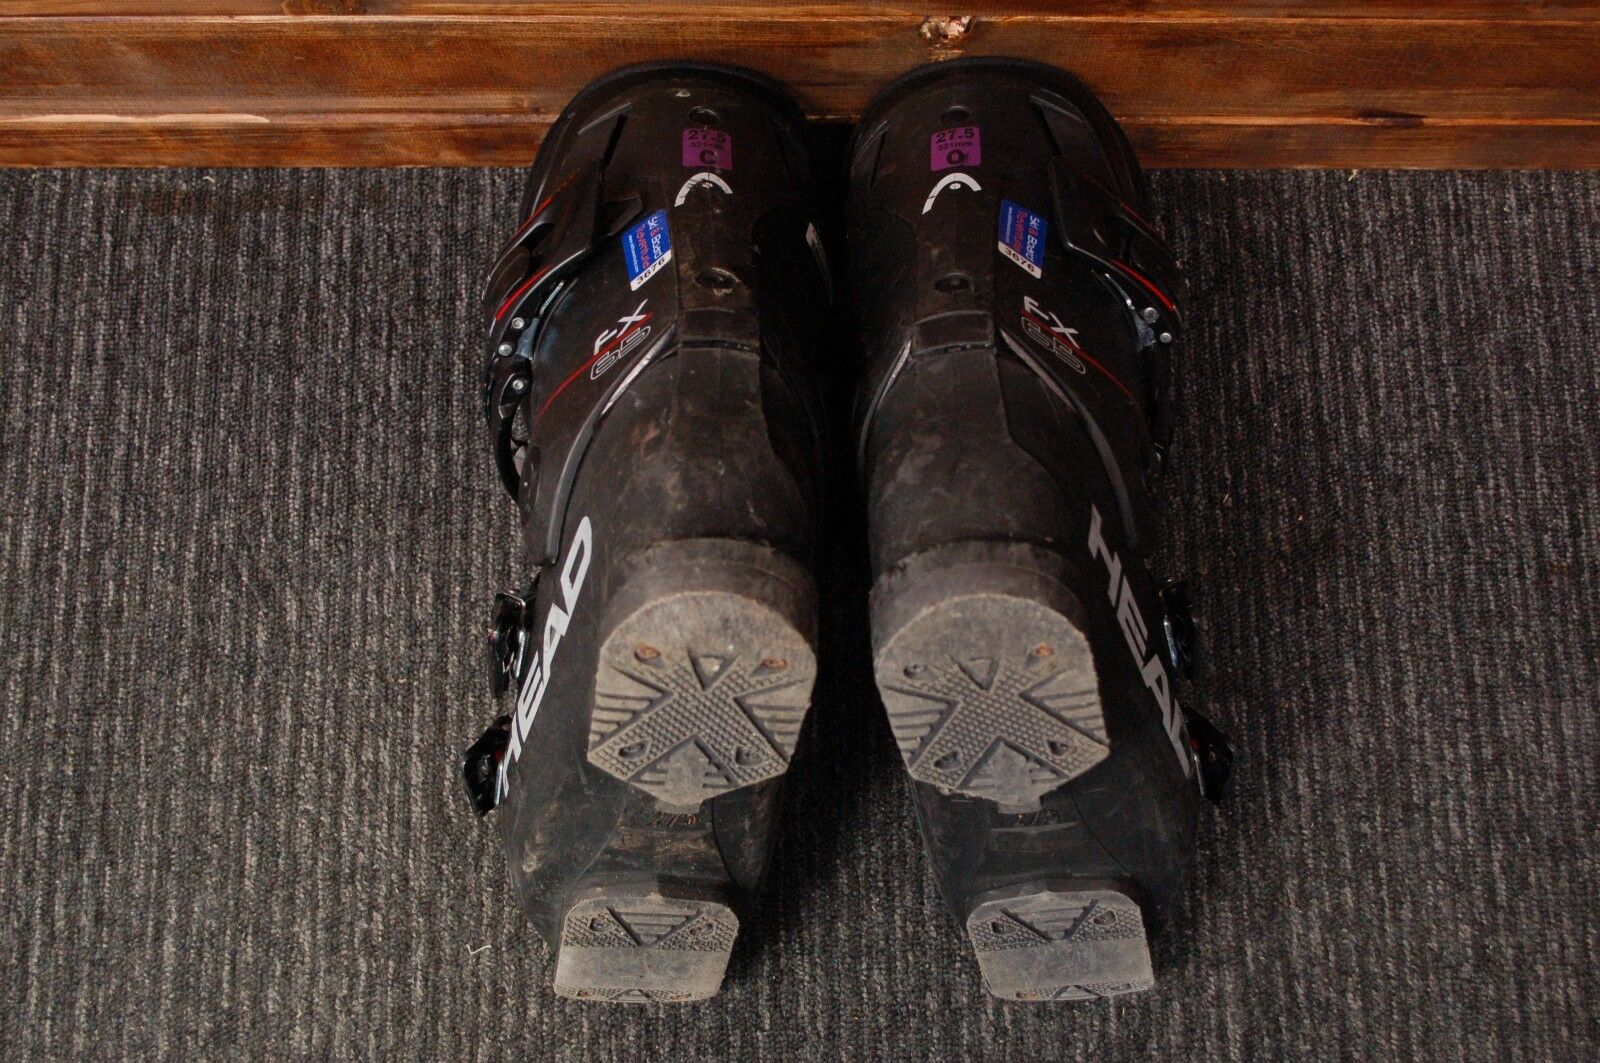 HEAD FX 65 (US HT Ski Stiefel (US 65 9; EU 42.5; UK 8.5) 1801b0